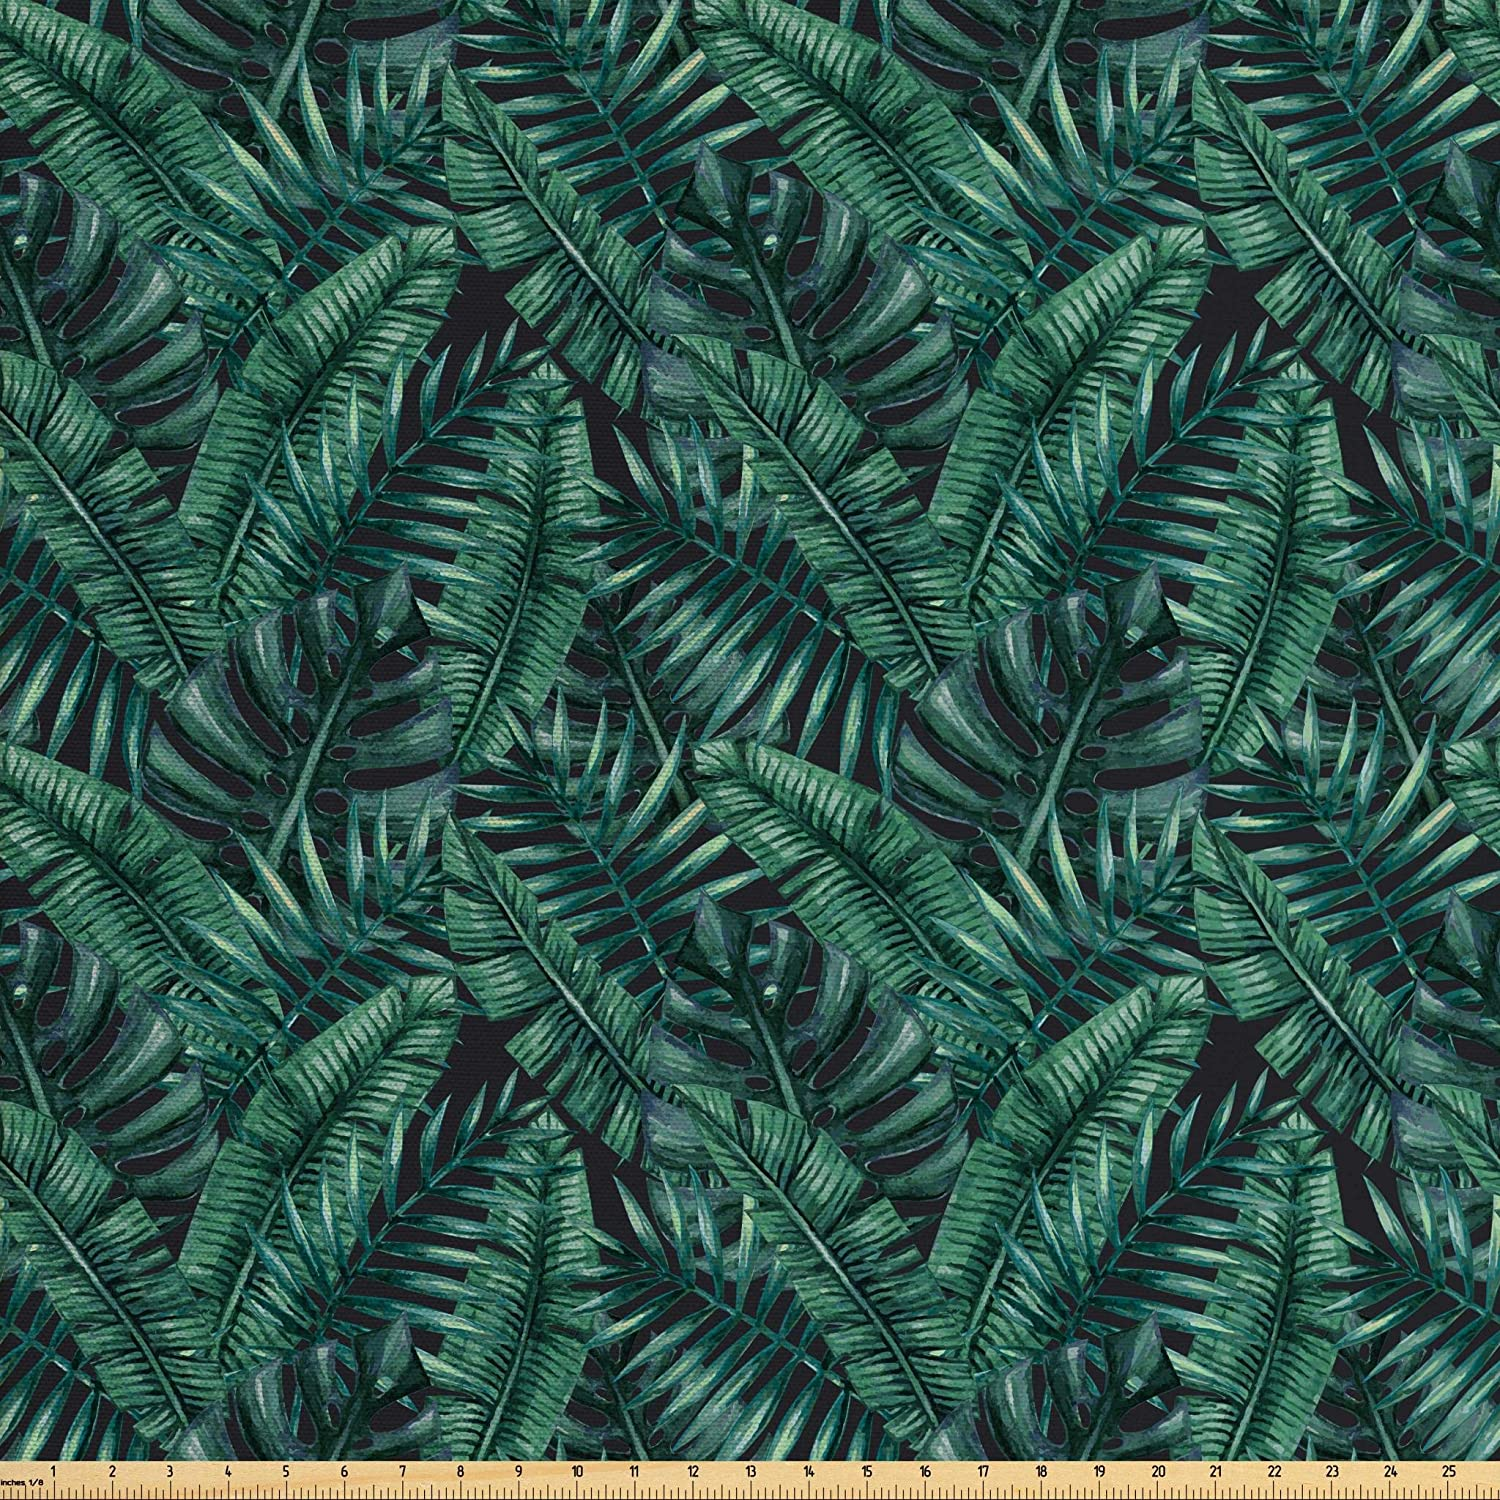 Ambesonne Palm Leaf Fabric by The Yard, Watercolor Tropical Jungle Leaves Pattern Fresh Rainforest Hawaii Summer, Decorative Fabric for Upholstery and Home Accents, 2 Yards, Green Black